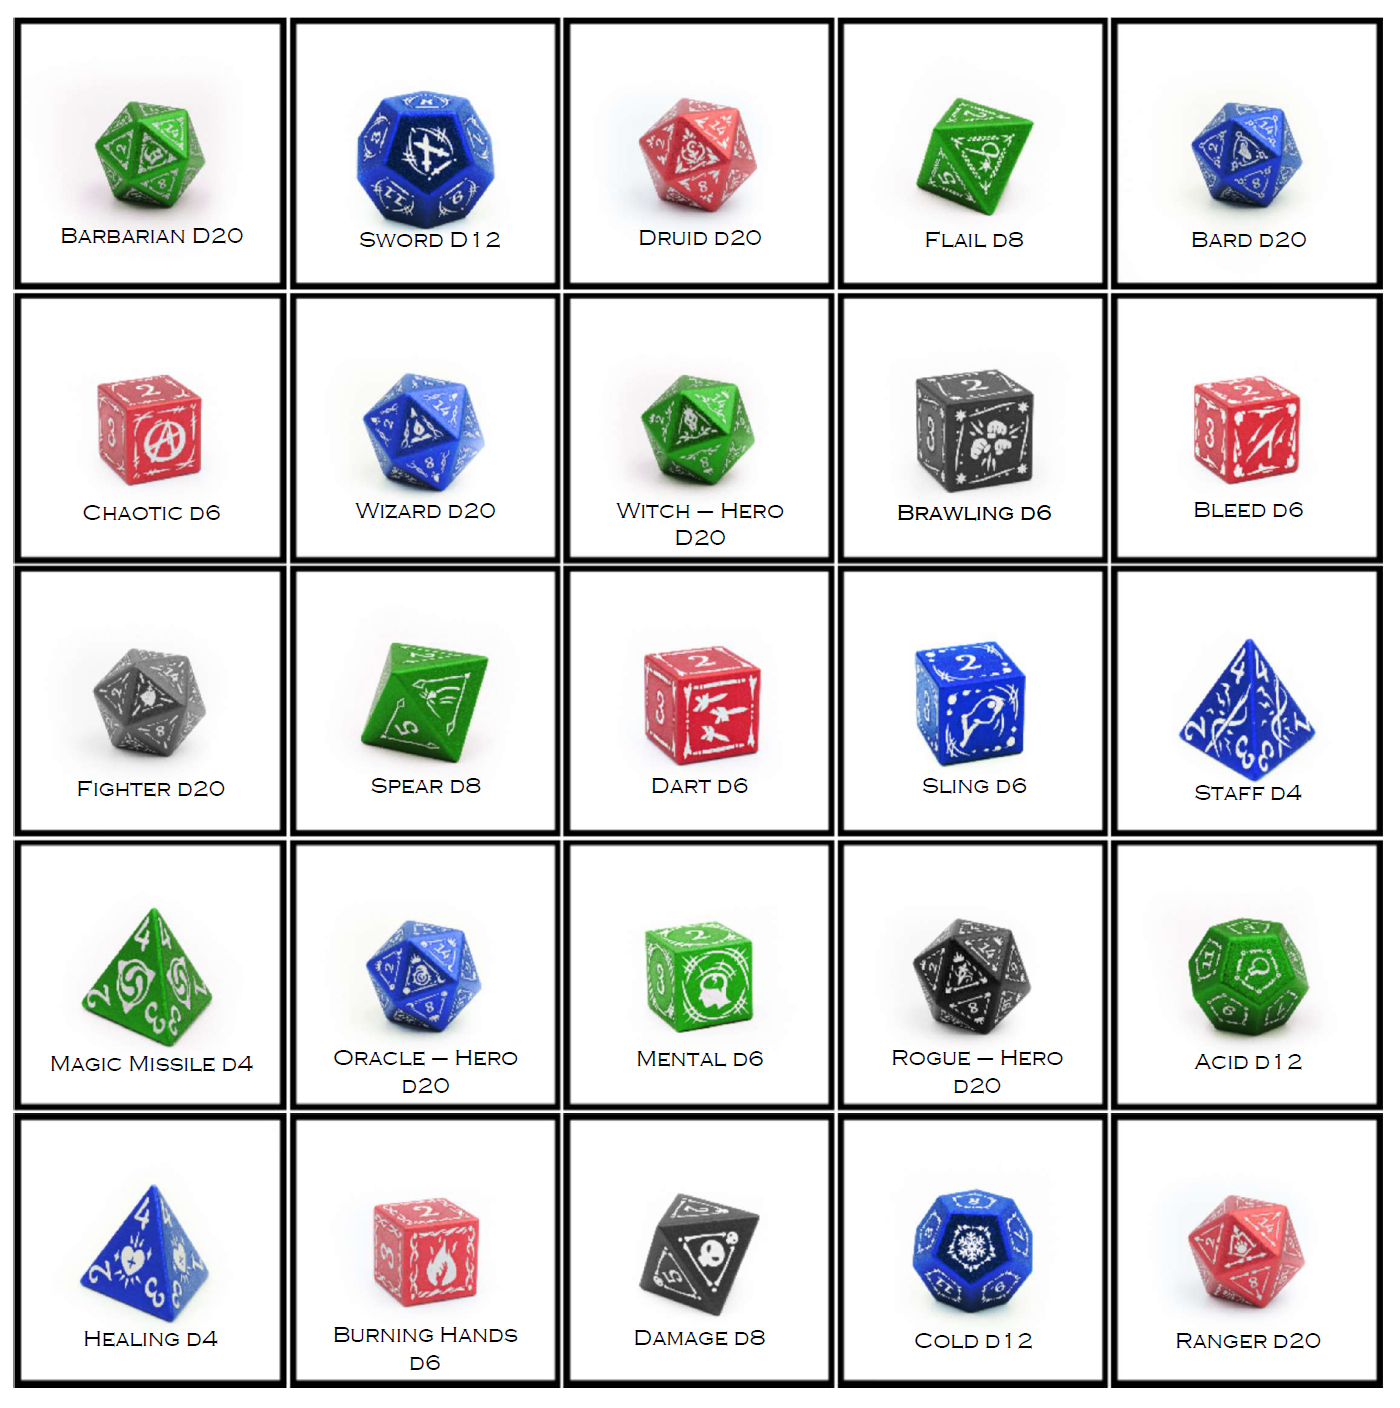 Grid of different dice options, listed left to right in five rows of five. Row one: Green Barbarian D20, Blue Sword D12, Red Druid D20, Green Flail D8, Blue Bard D20. Row two: Red Chaotic D6, Blue wizard D20, Green Witch - Hero D20, Grey Brawling D6, Red Bleed D6. Row three, Grey fighter D20, Green Spear D8, Red Dart D6, Blue sling D6, Blue staff D4. Row four: Green magic missile D4, Blue Oracle - hero D20, Green mental D6, Grey rogue - hero D20, Green Acid D12. Row five: blue Healing D4, Red burning hands D6, grey damage D8, blue Cold D12, red ranger D20